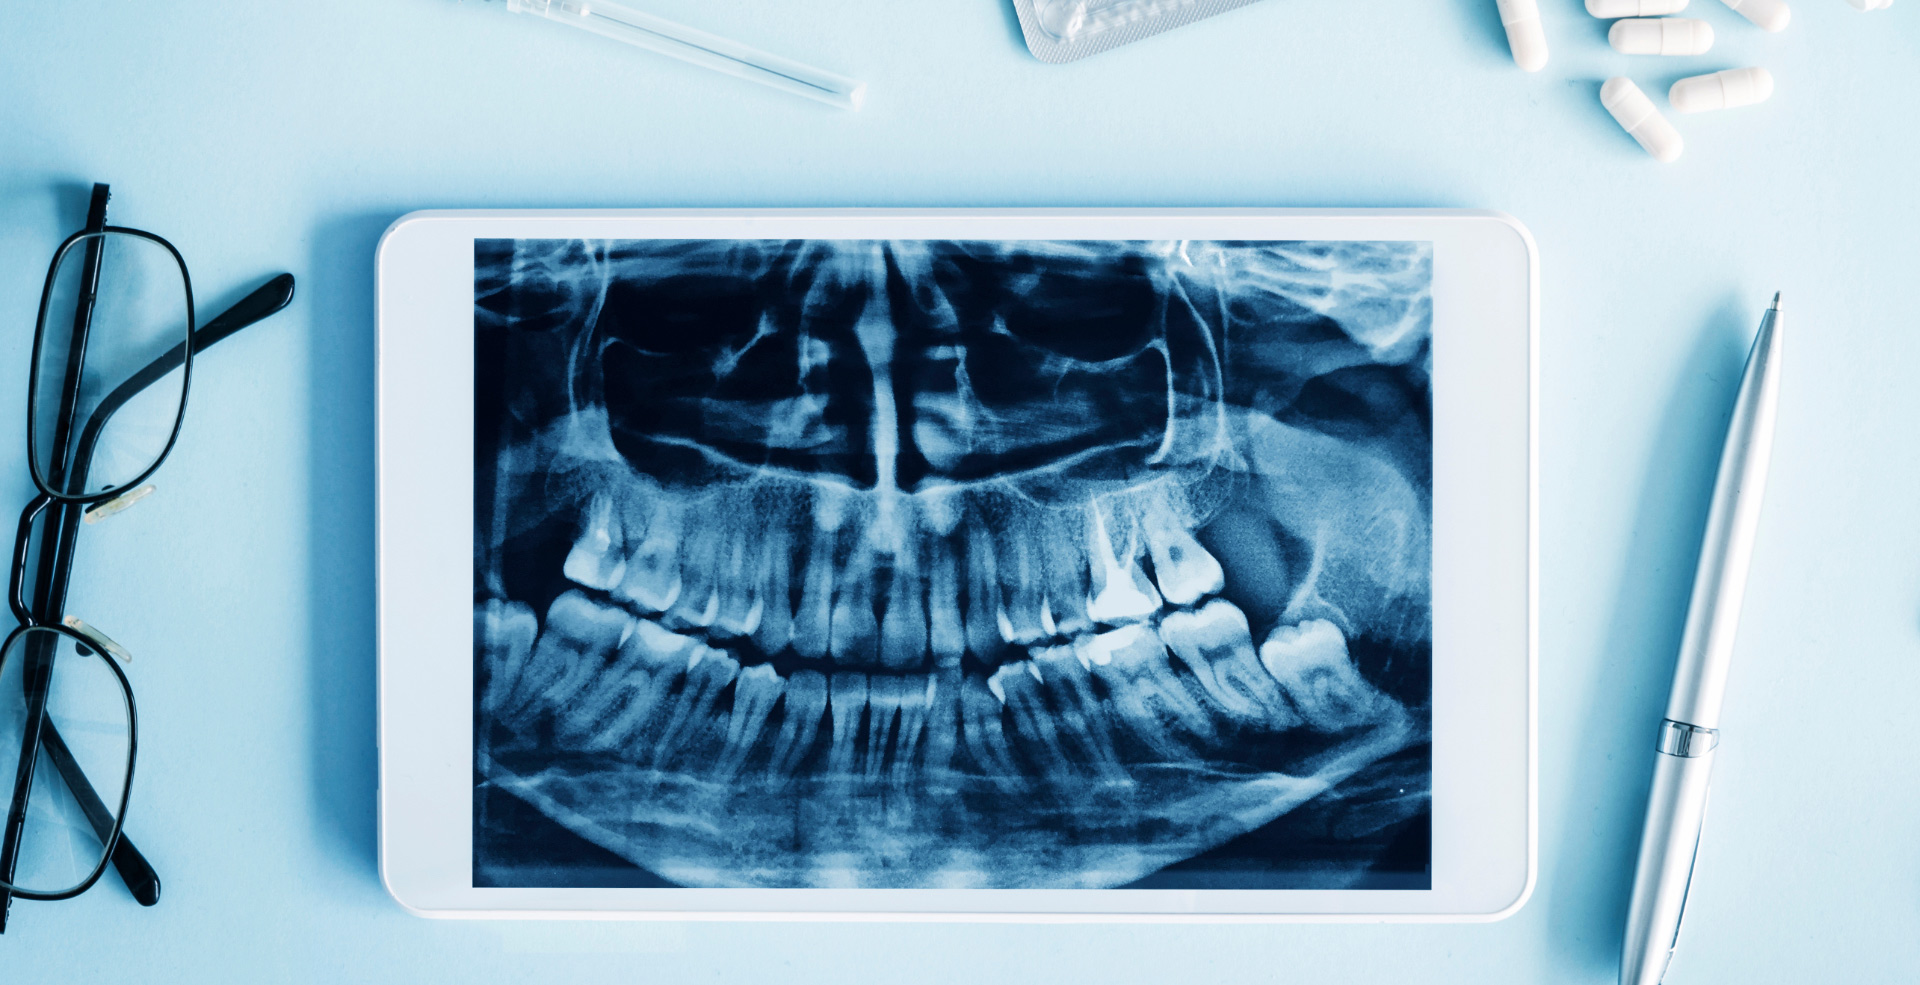 Front mouth x-ray surrounded by glasses, pen and pills around it